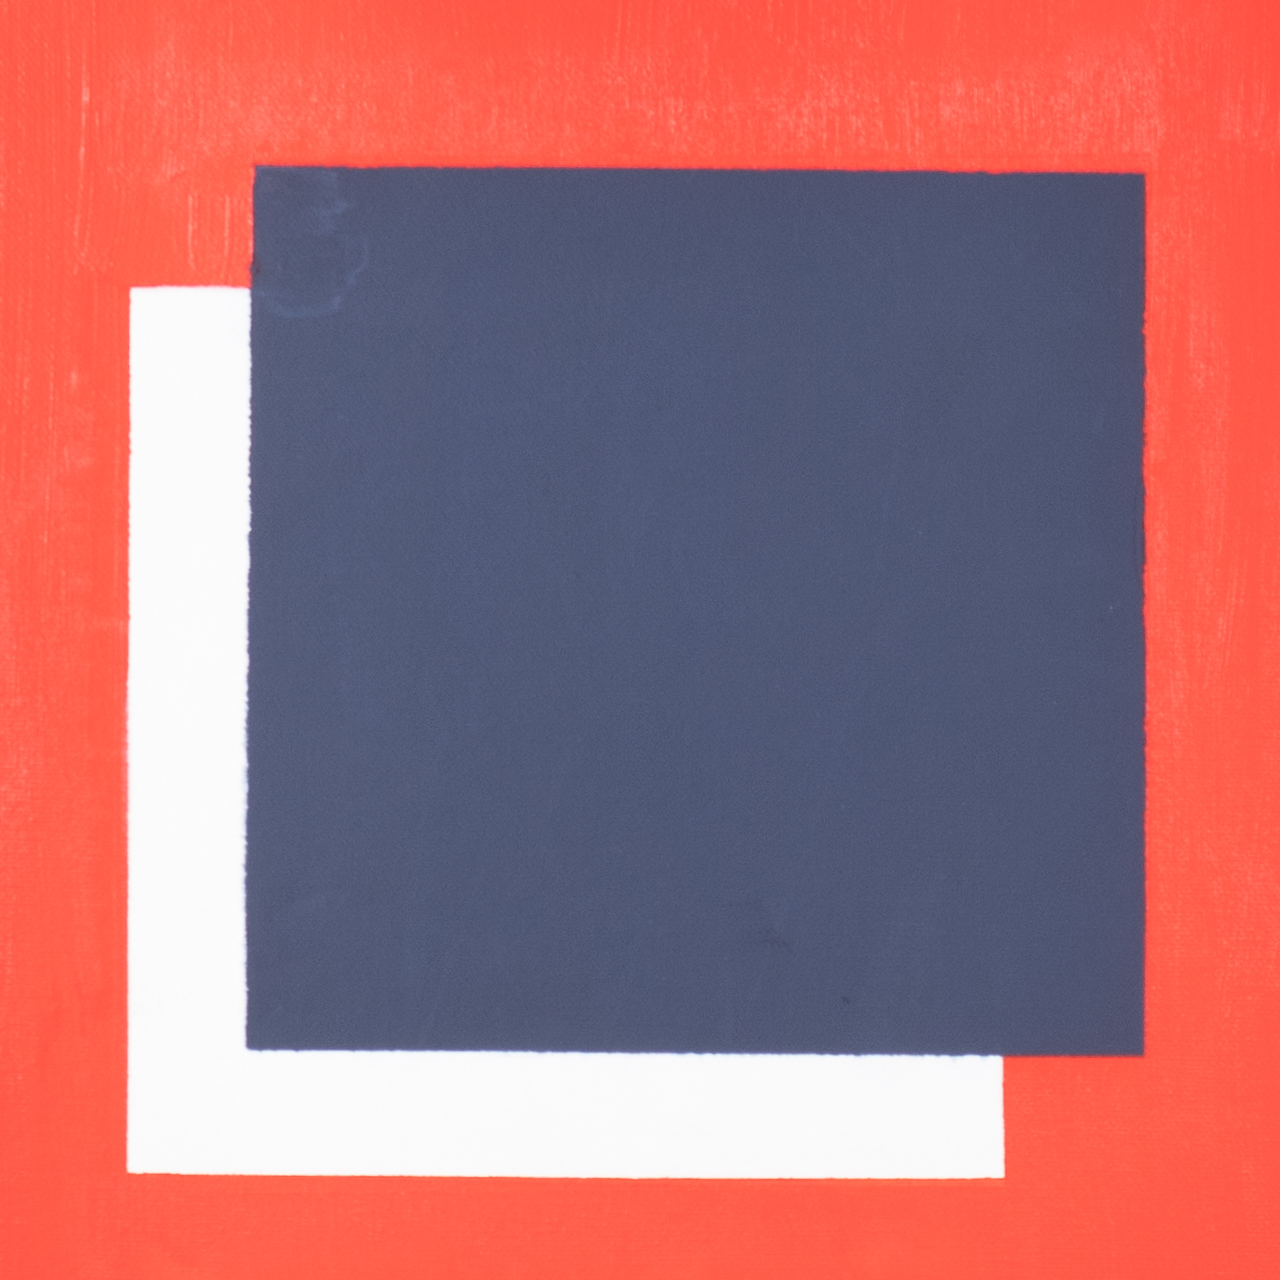 Pair of Contemporary Abstract Paintings Jacob Lloyds - Image 8 of 13